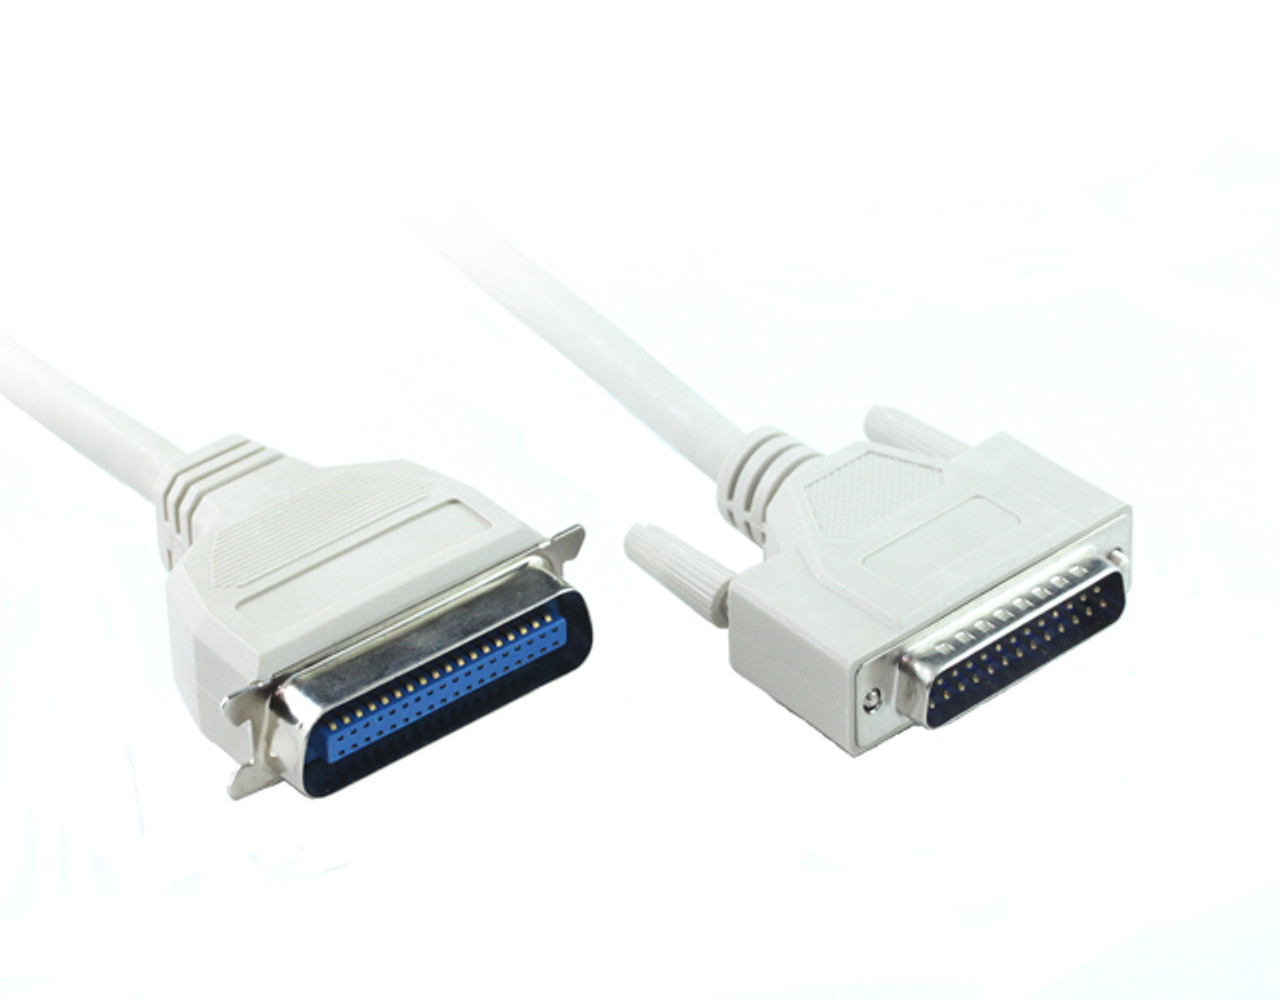 Product image for 1.8M DB25M To Centronic 36M Printer Cable | CX Computer Superstore